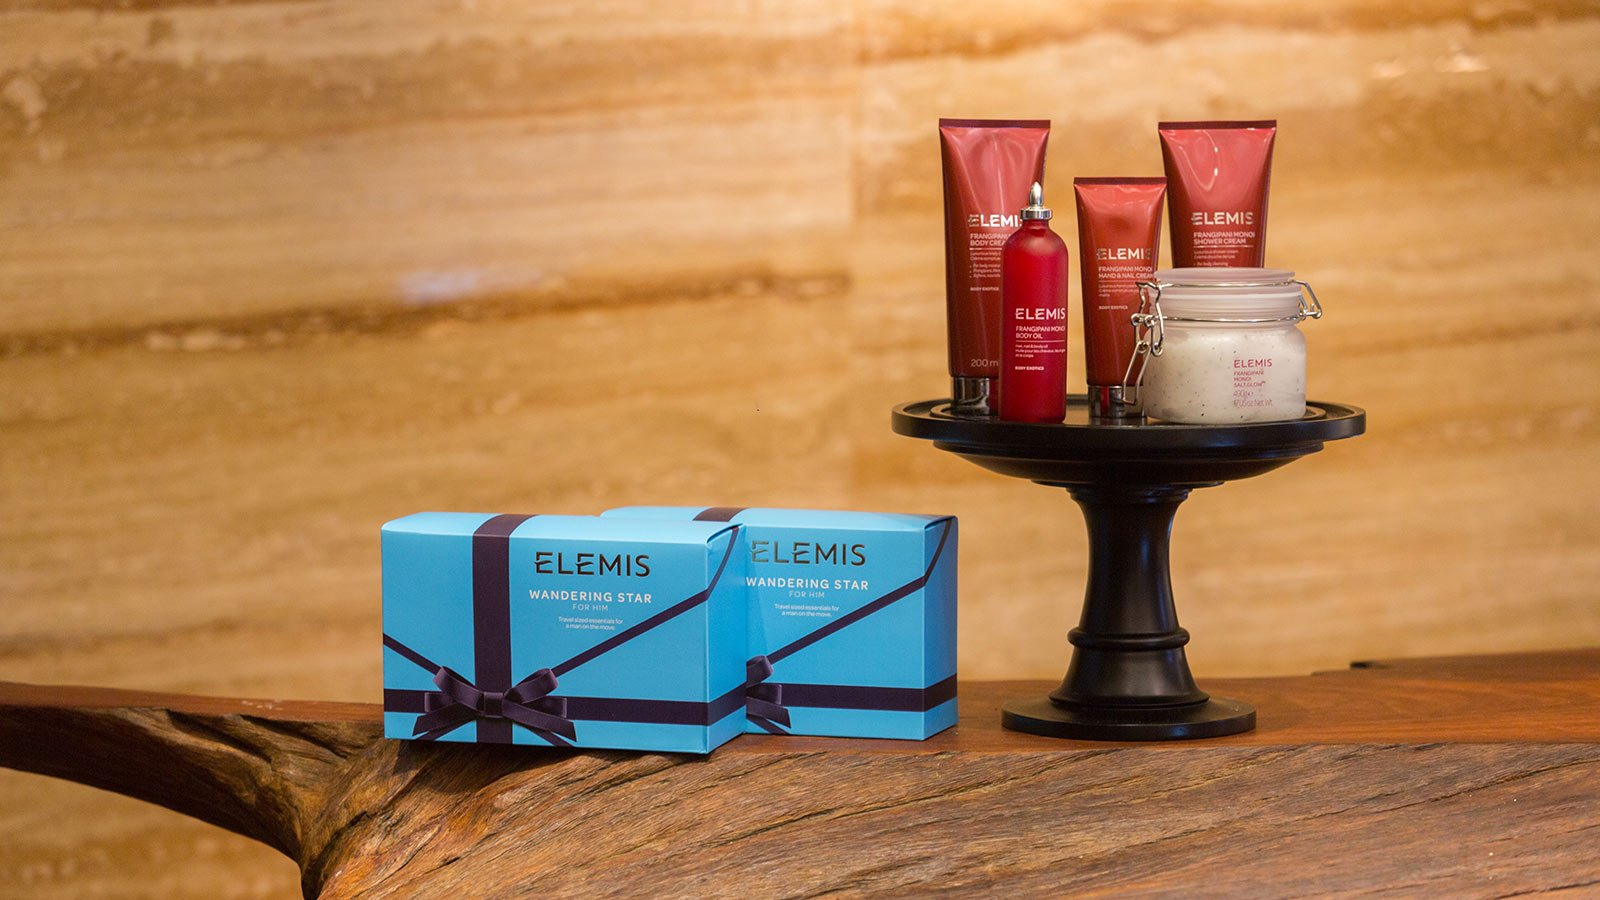 Elemis products at Tamara Spa